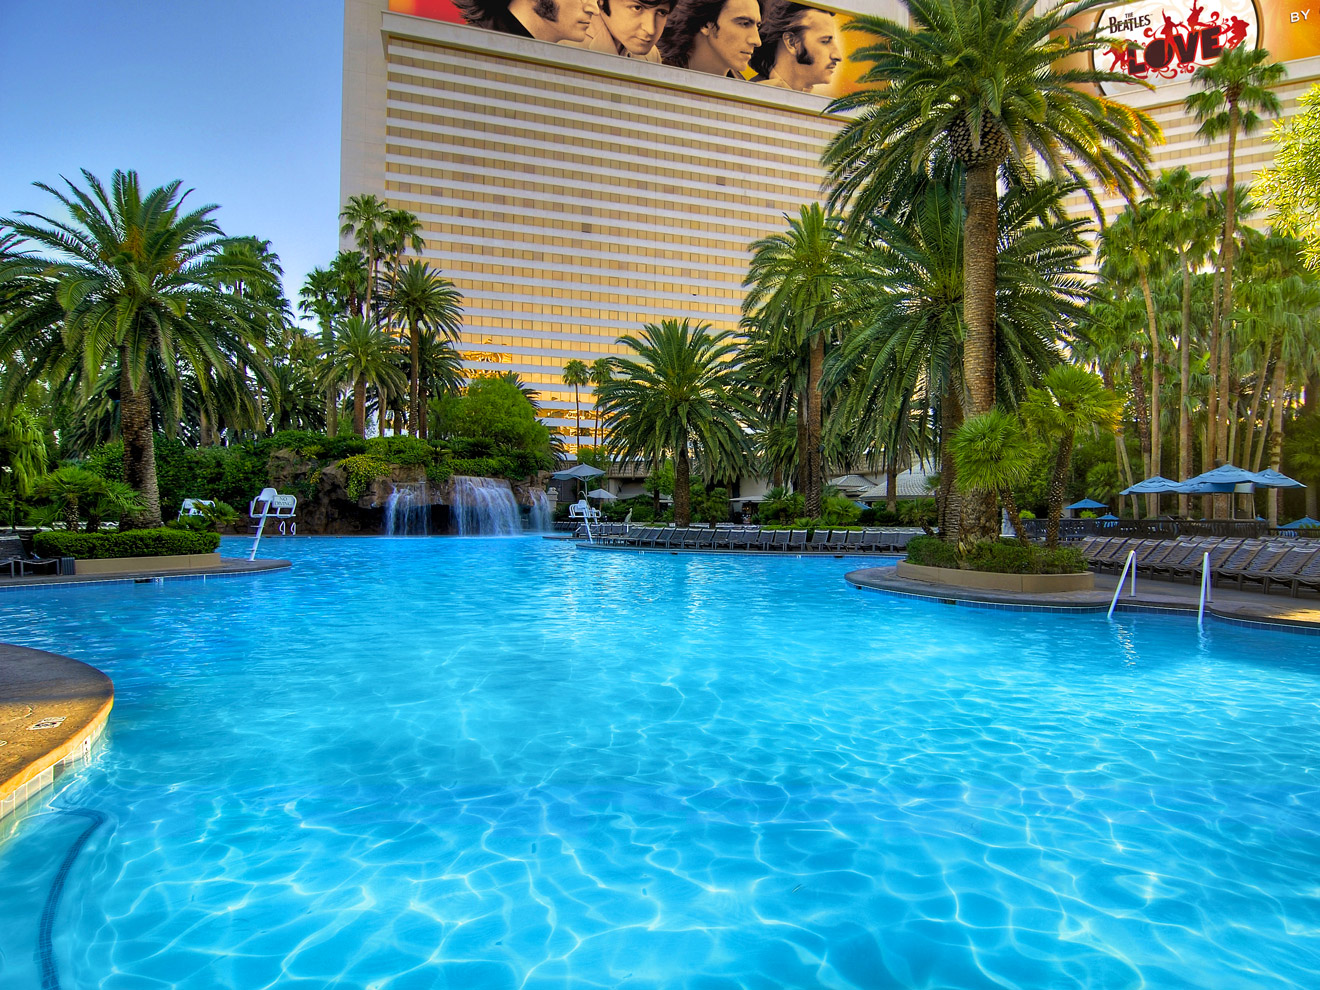 The Mirage Hotel Has One Of Best Family Pools In Las Vegas